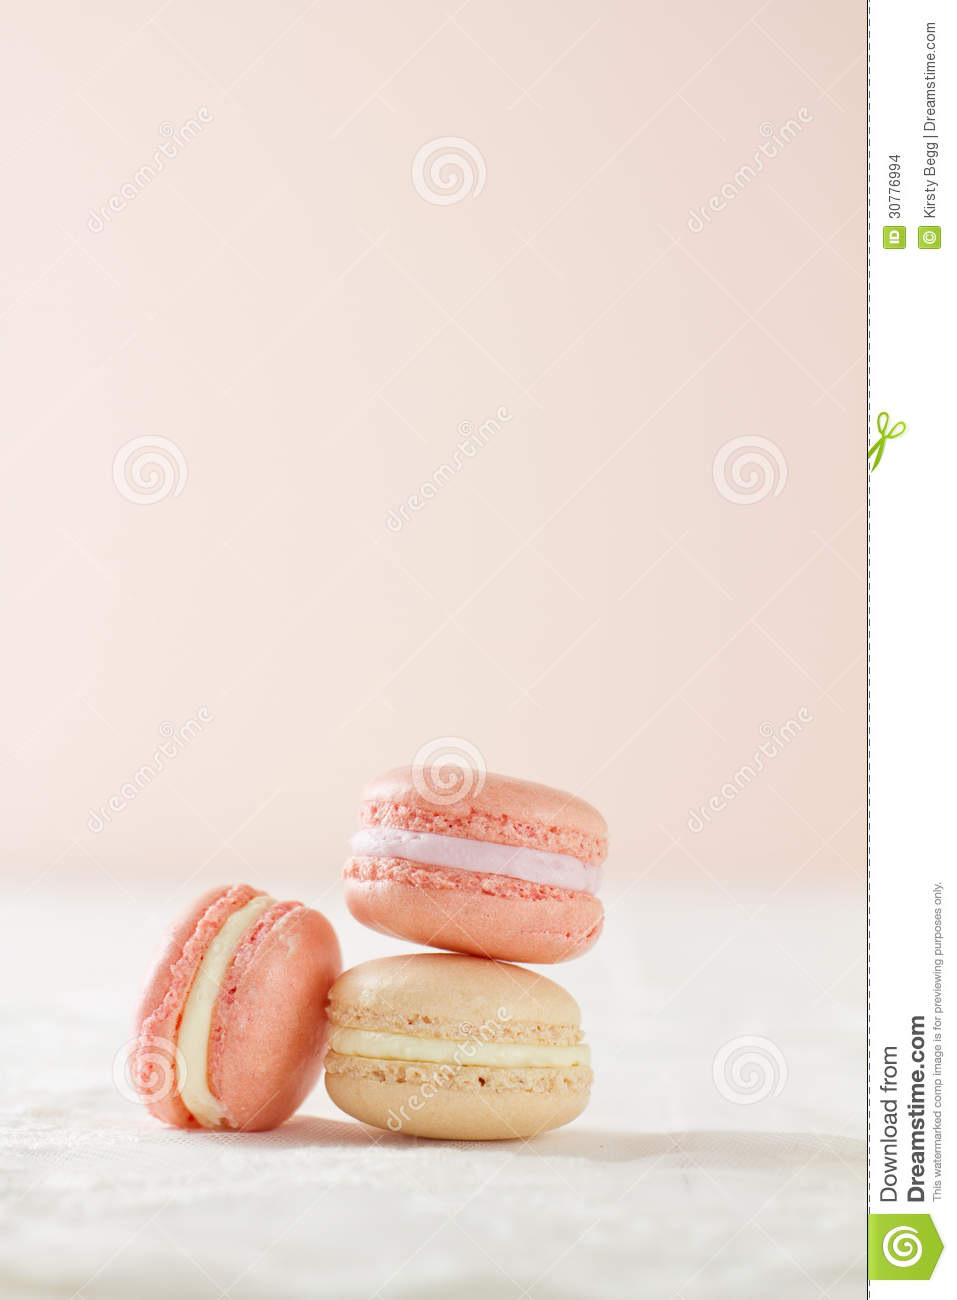 pronounced macaroon, a popular buttercream filled meringue type cookie ...